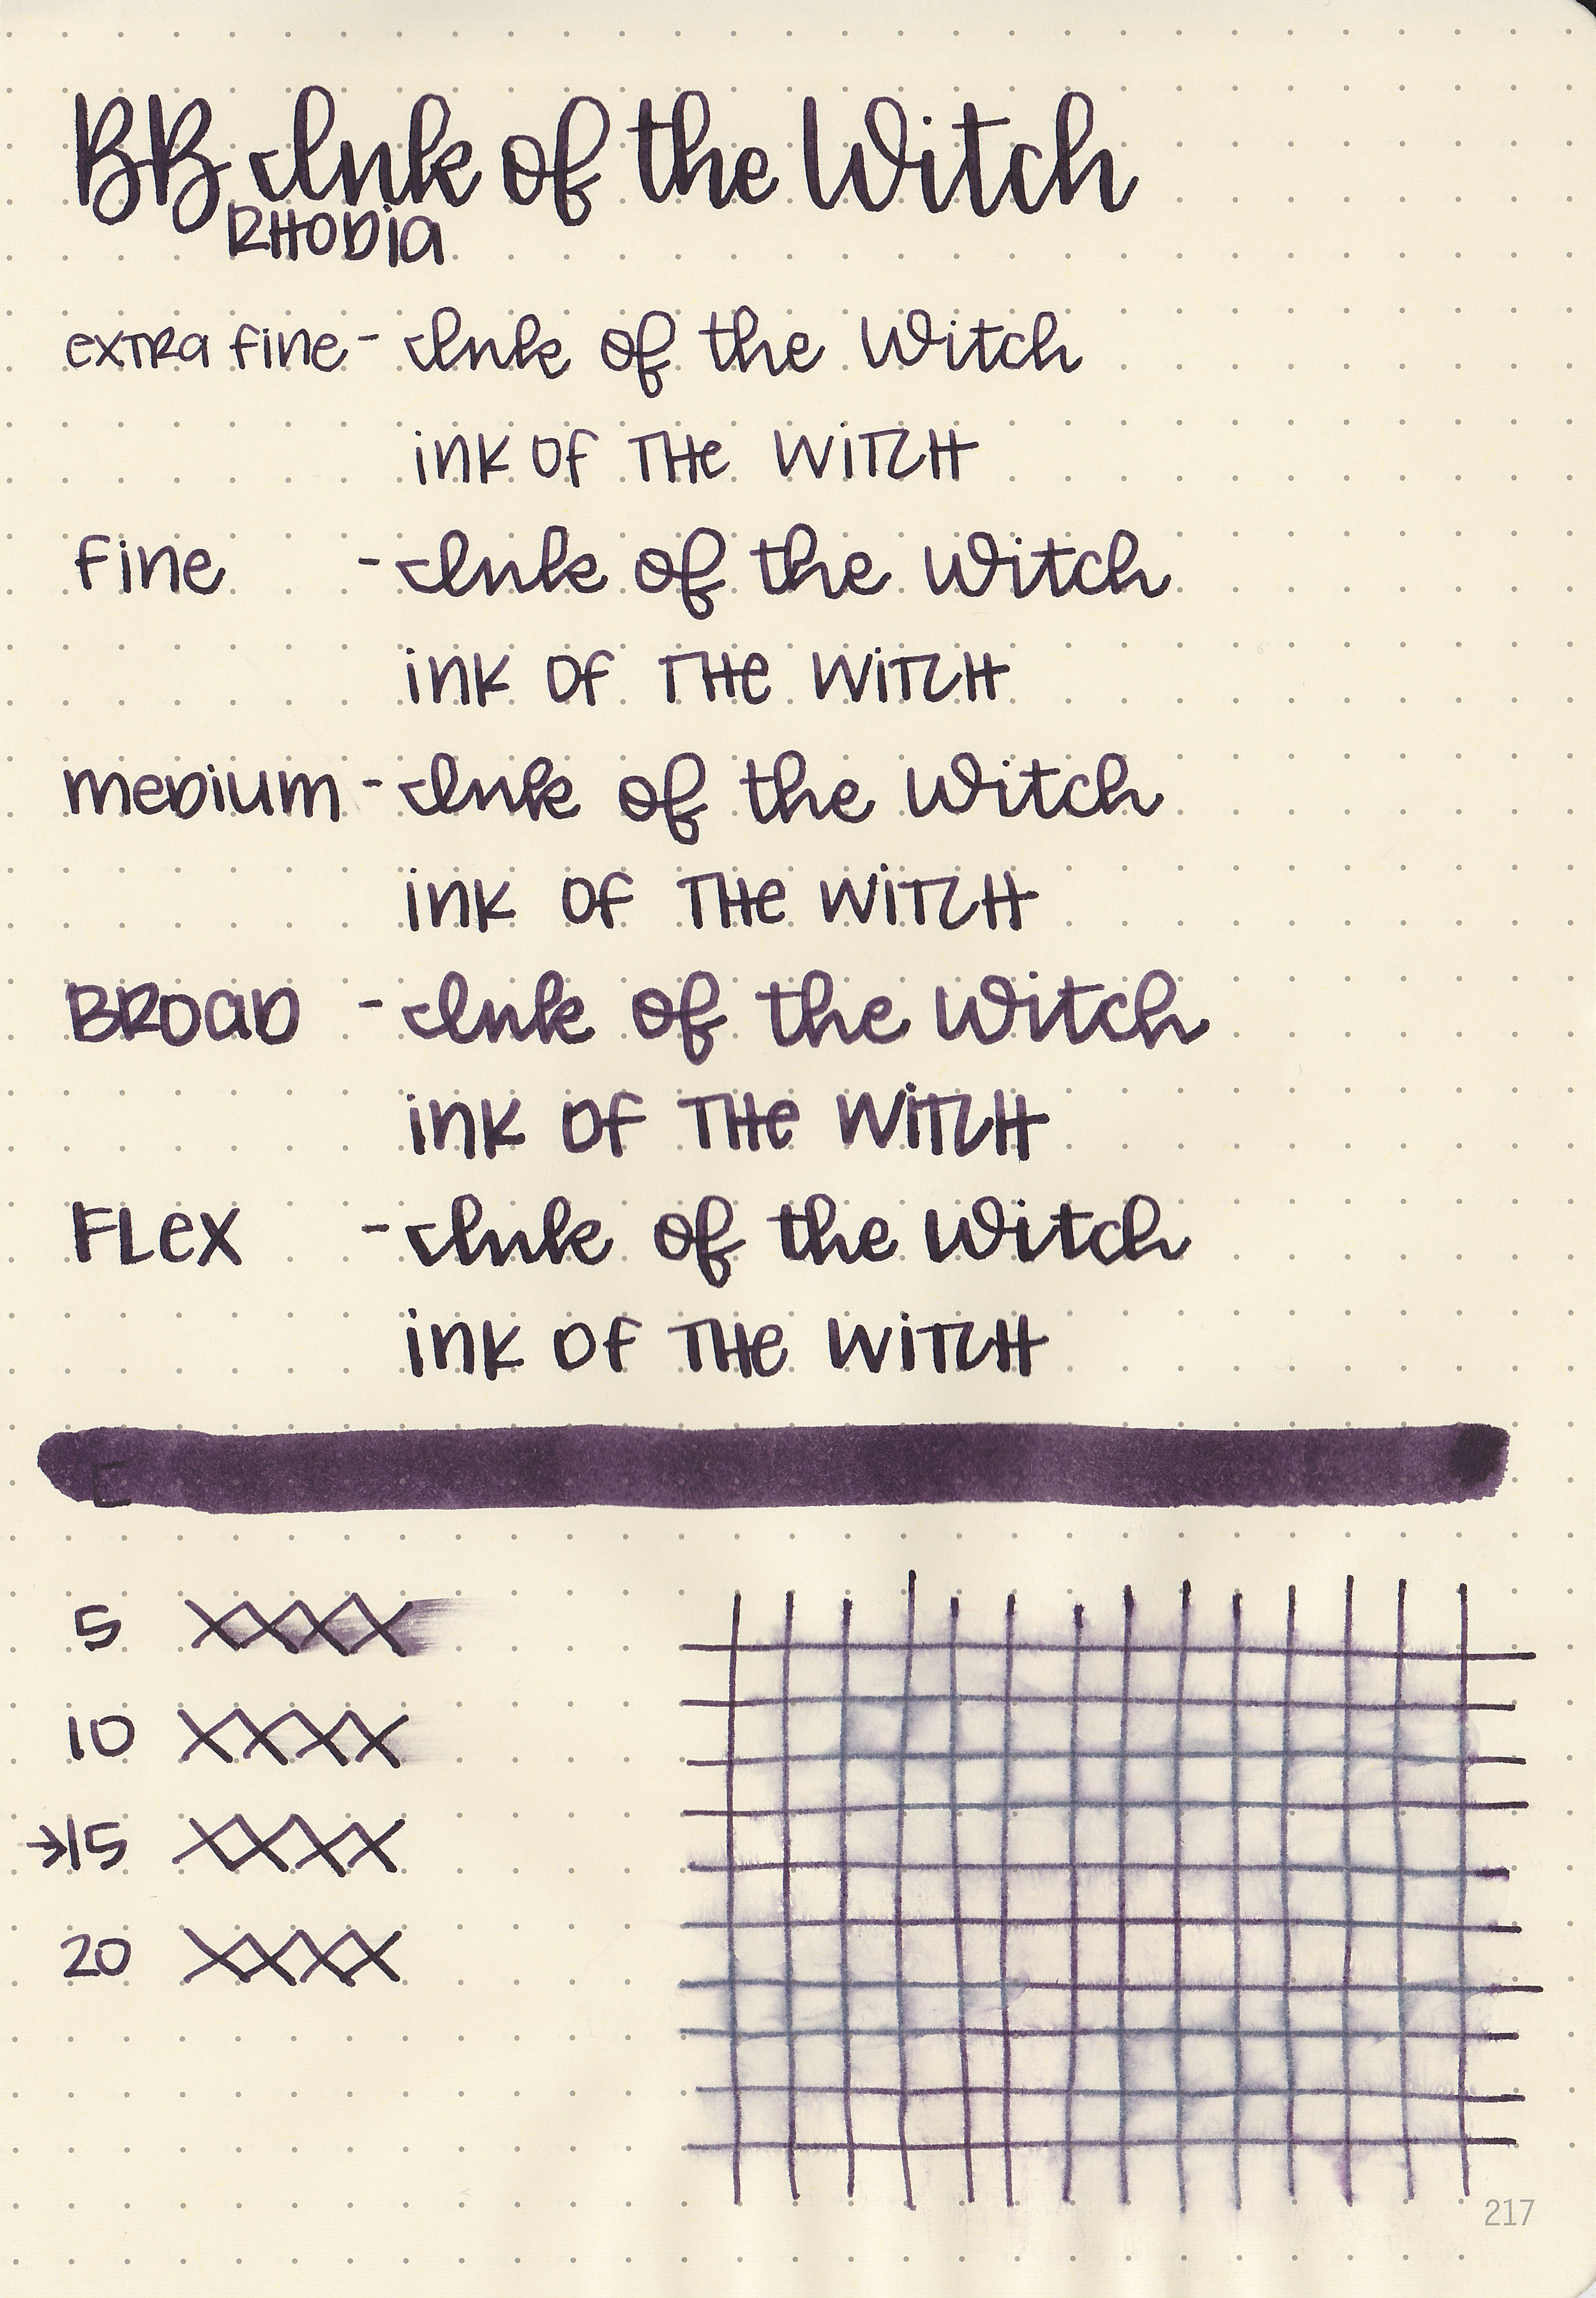 bb-ink-of-the-witch-10.jpg